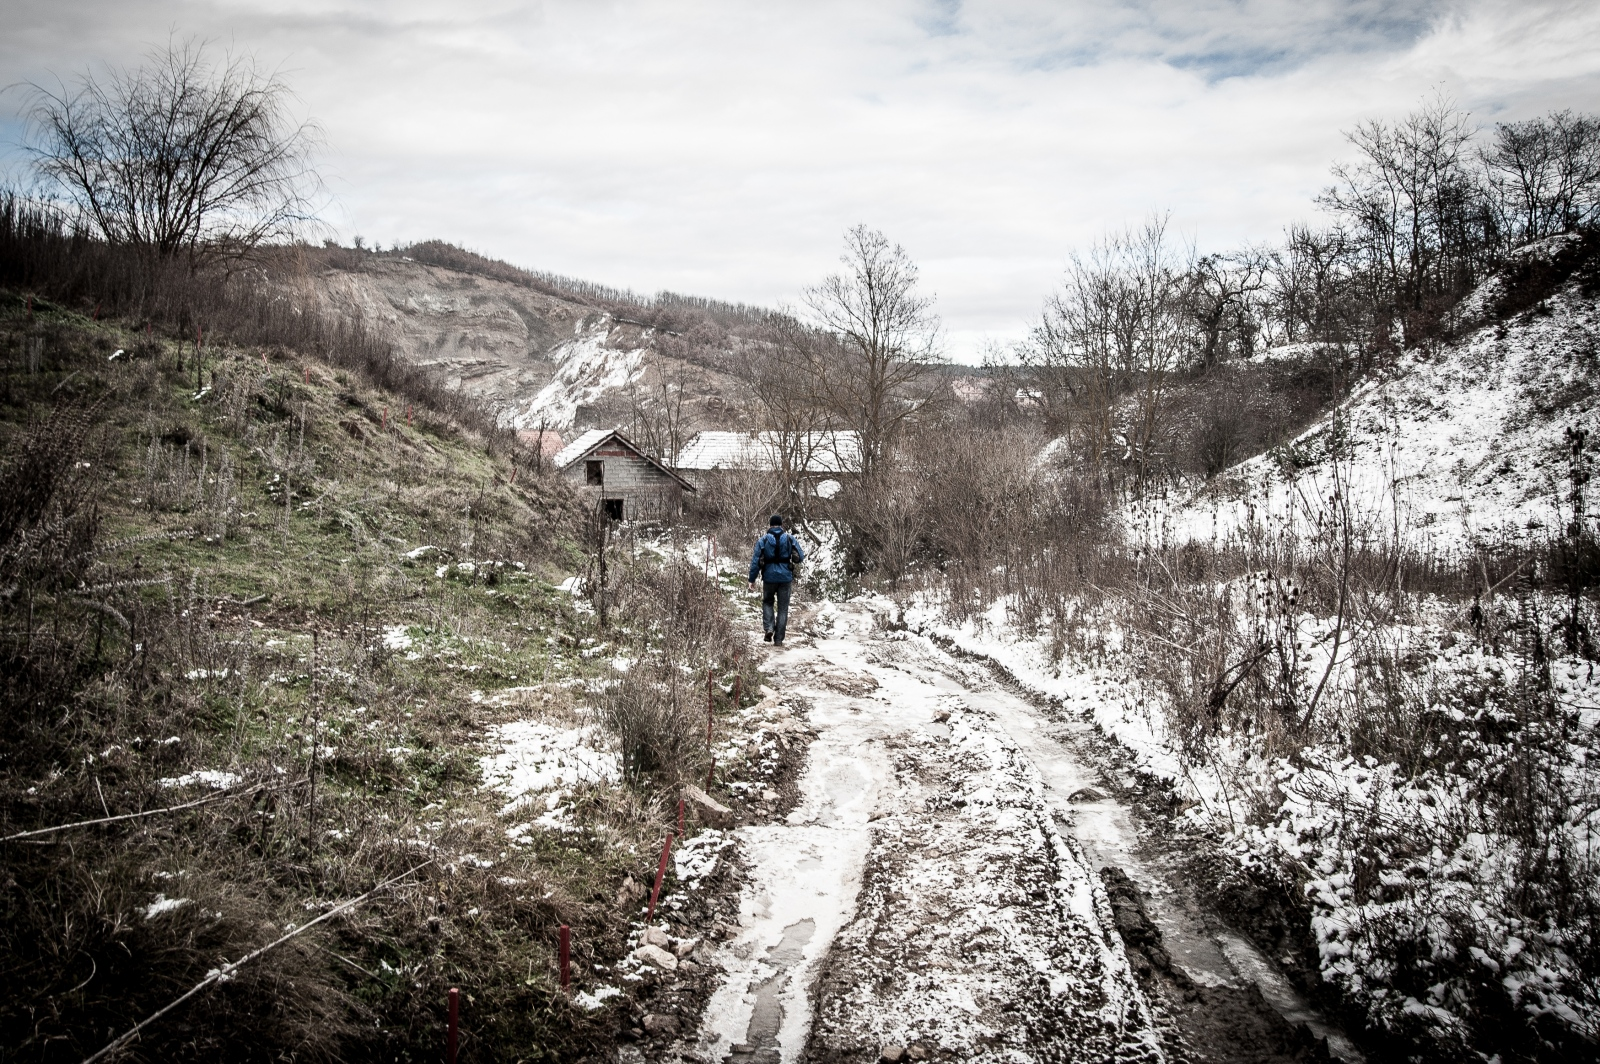 A de-miner searches along a snowy road returning to his village in northwestern Kosovo. December 2016.